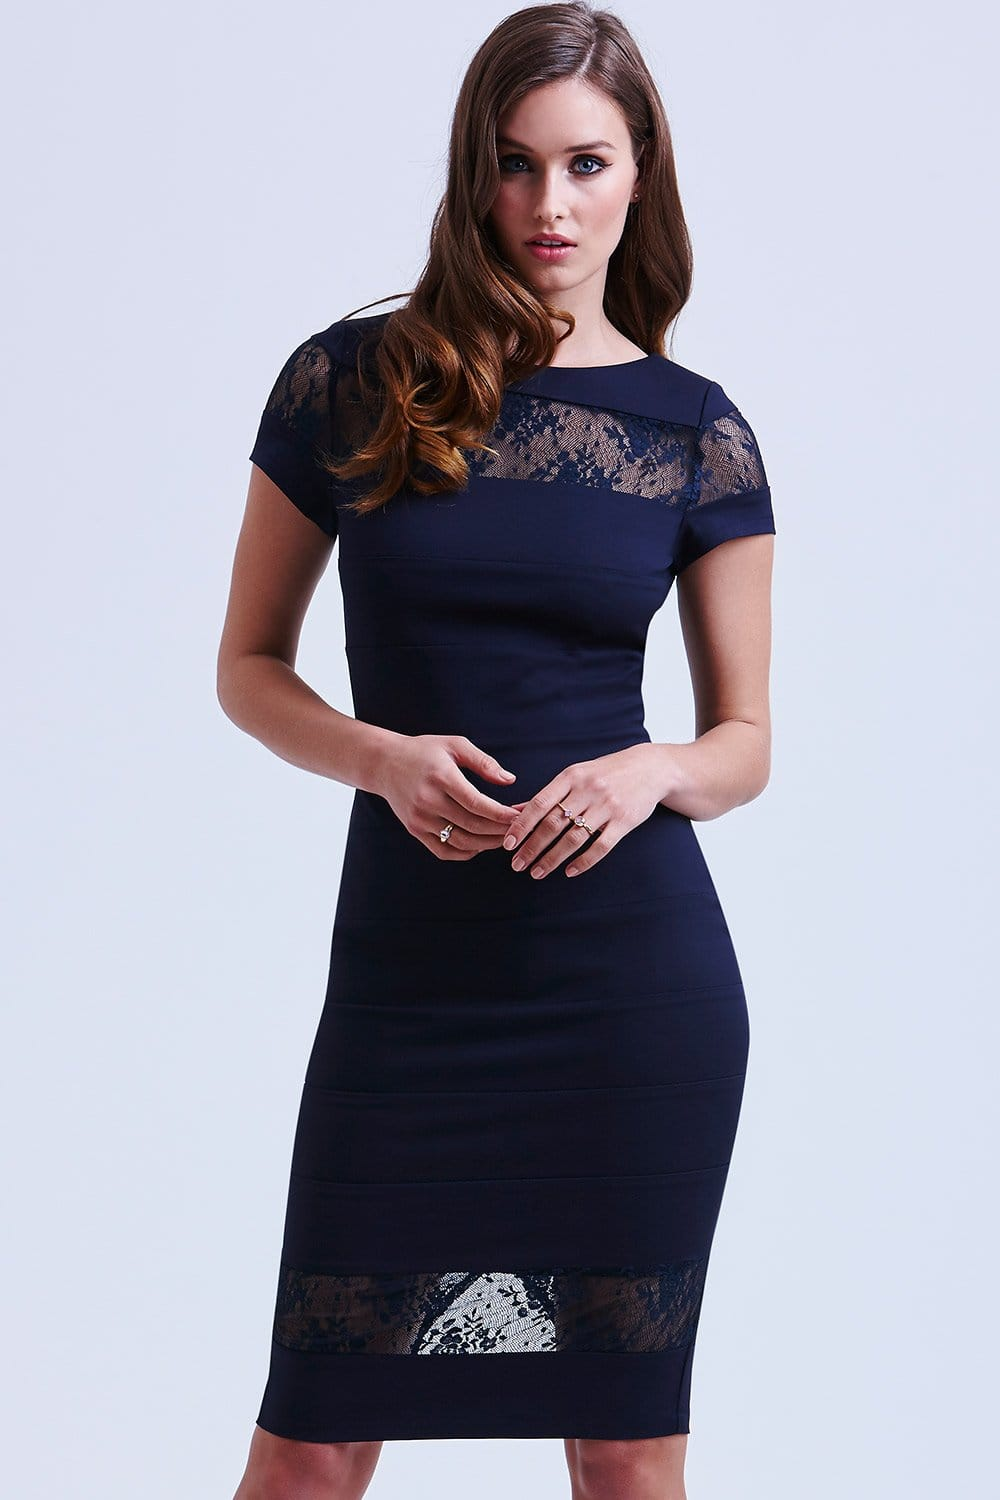 This is a women's lace covered bodycon dress. It comes in your choice of yellow or navy blue. The under layer of this dress is a stretchy, opaque, high quality fabric that is cut close to the body, and that is true to size. A triangular shaped cutout appears in the middle of the bust. This part of the dress has a vee shaped neckline.